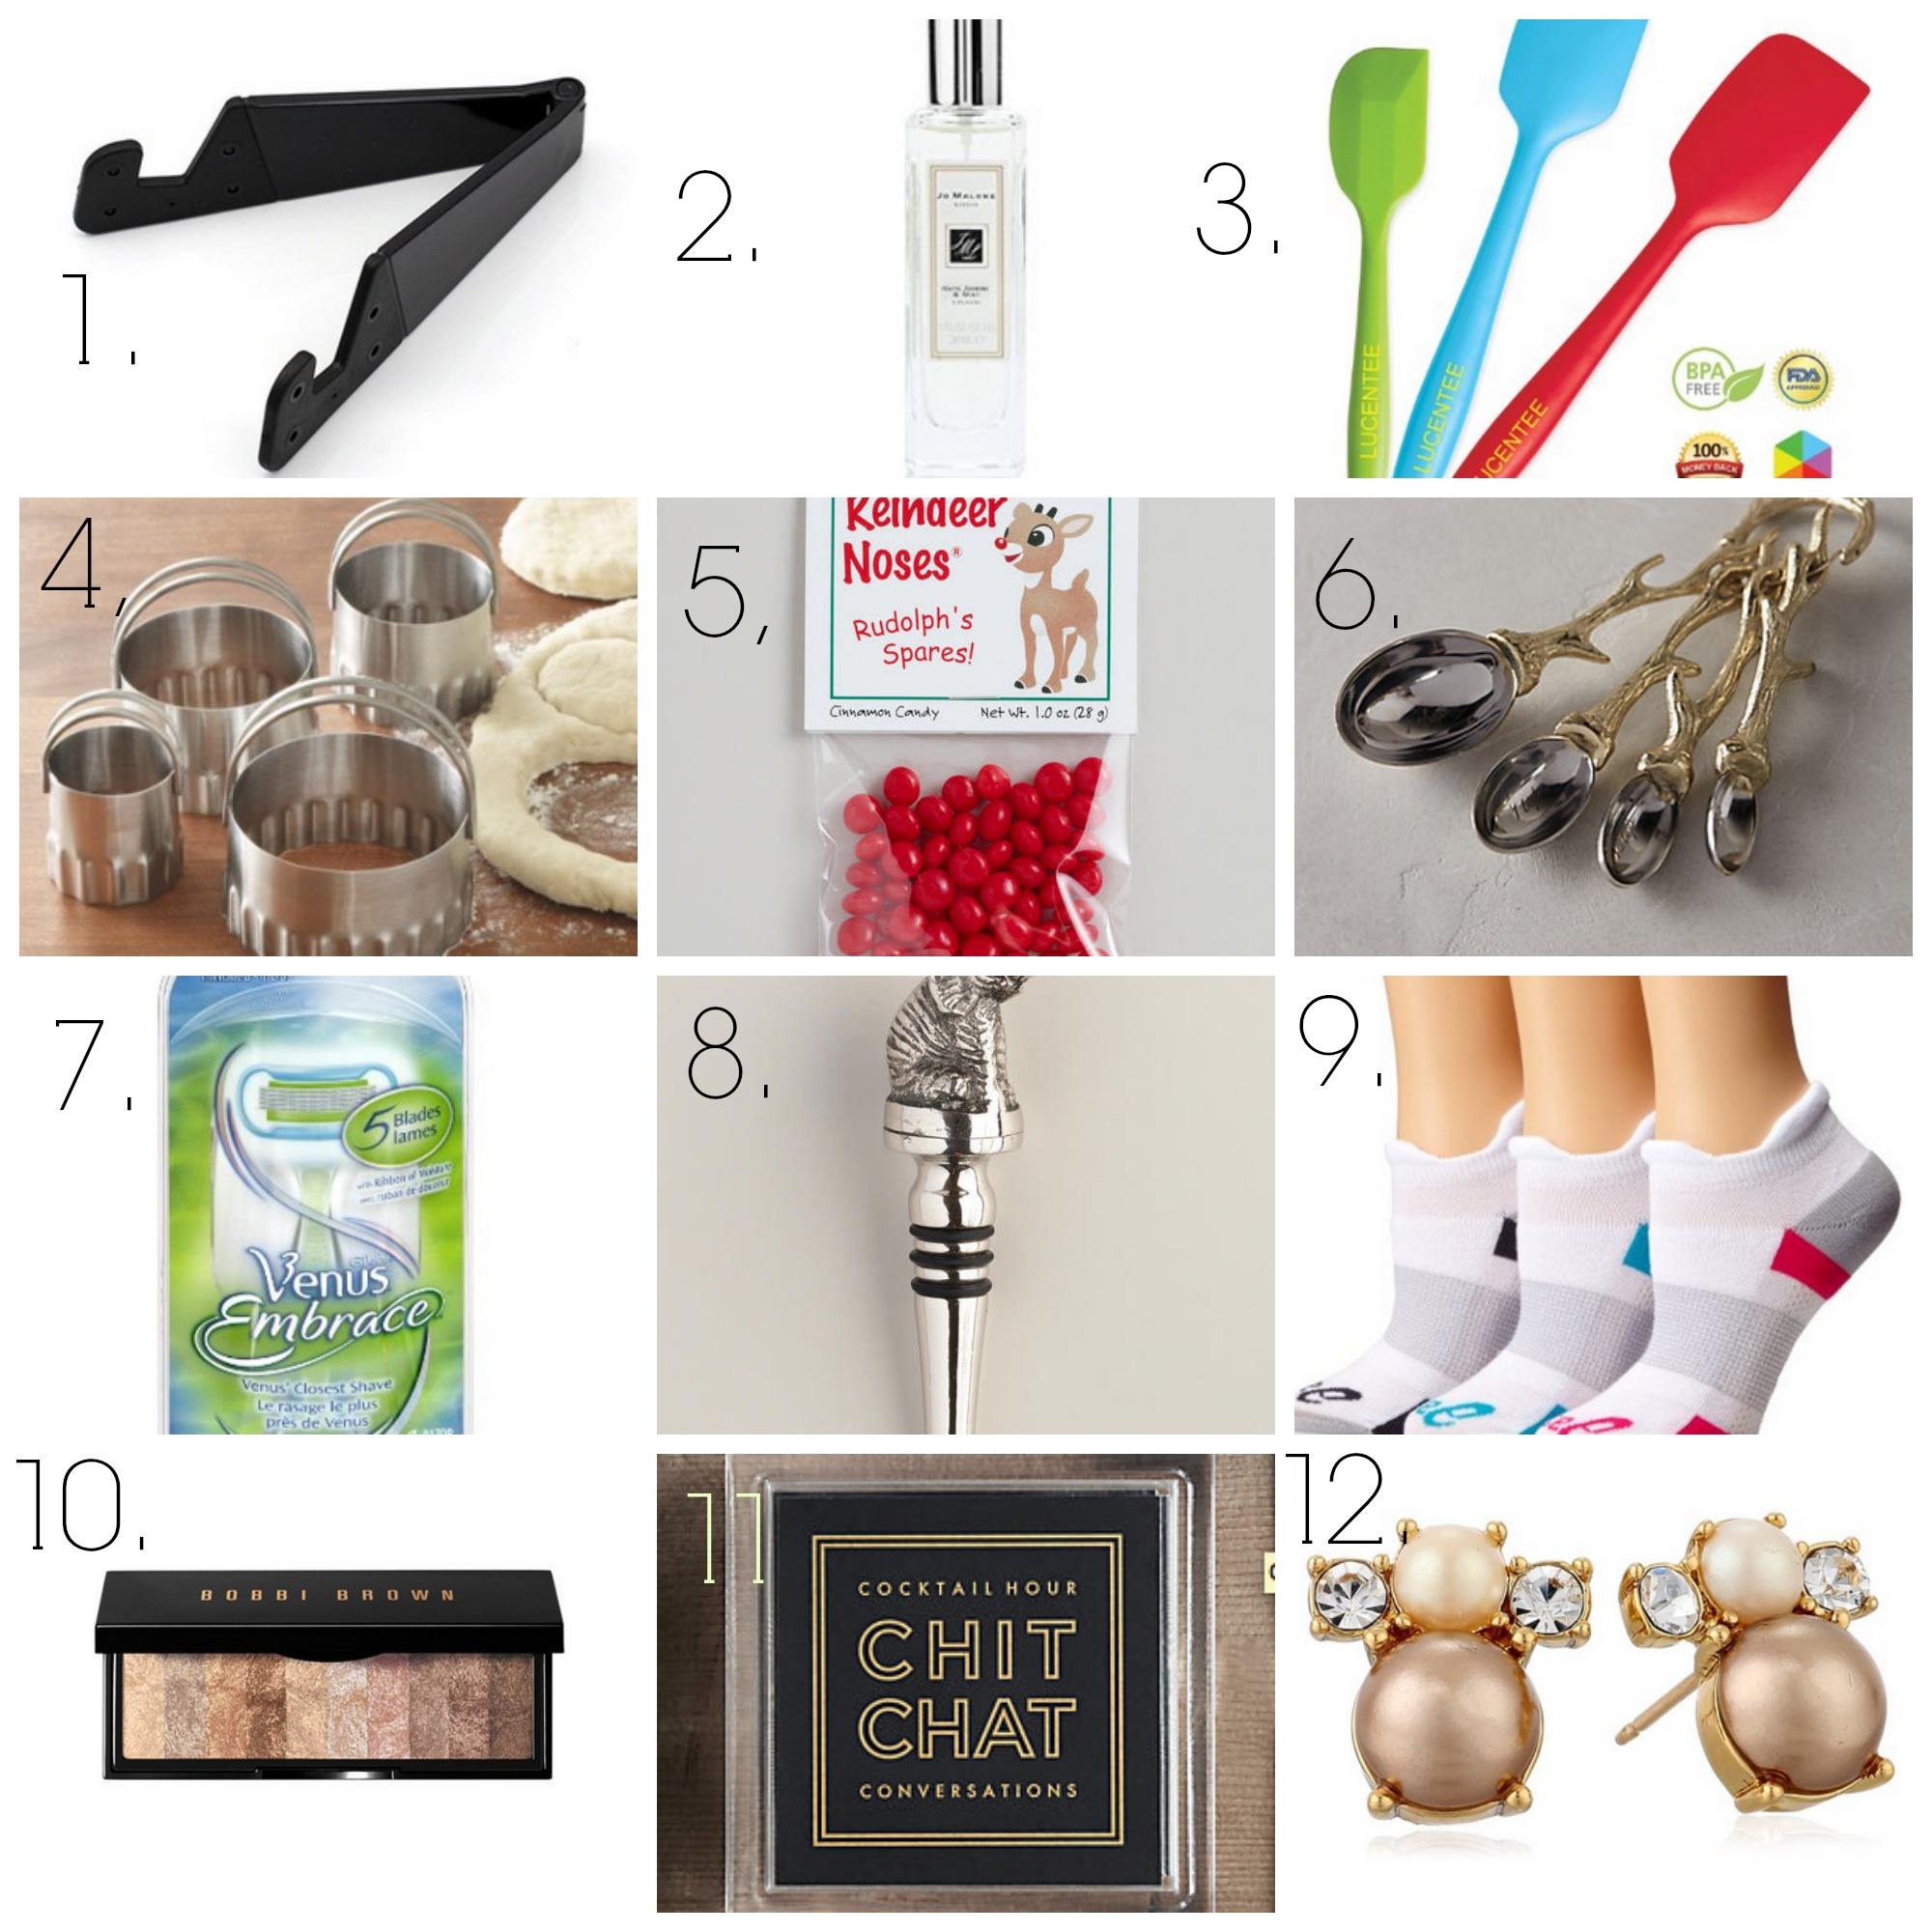 A gift guide full of great stocking stuffer ideas for the women in your life!